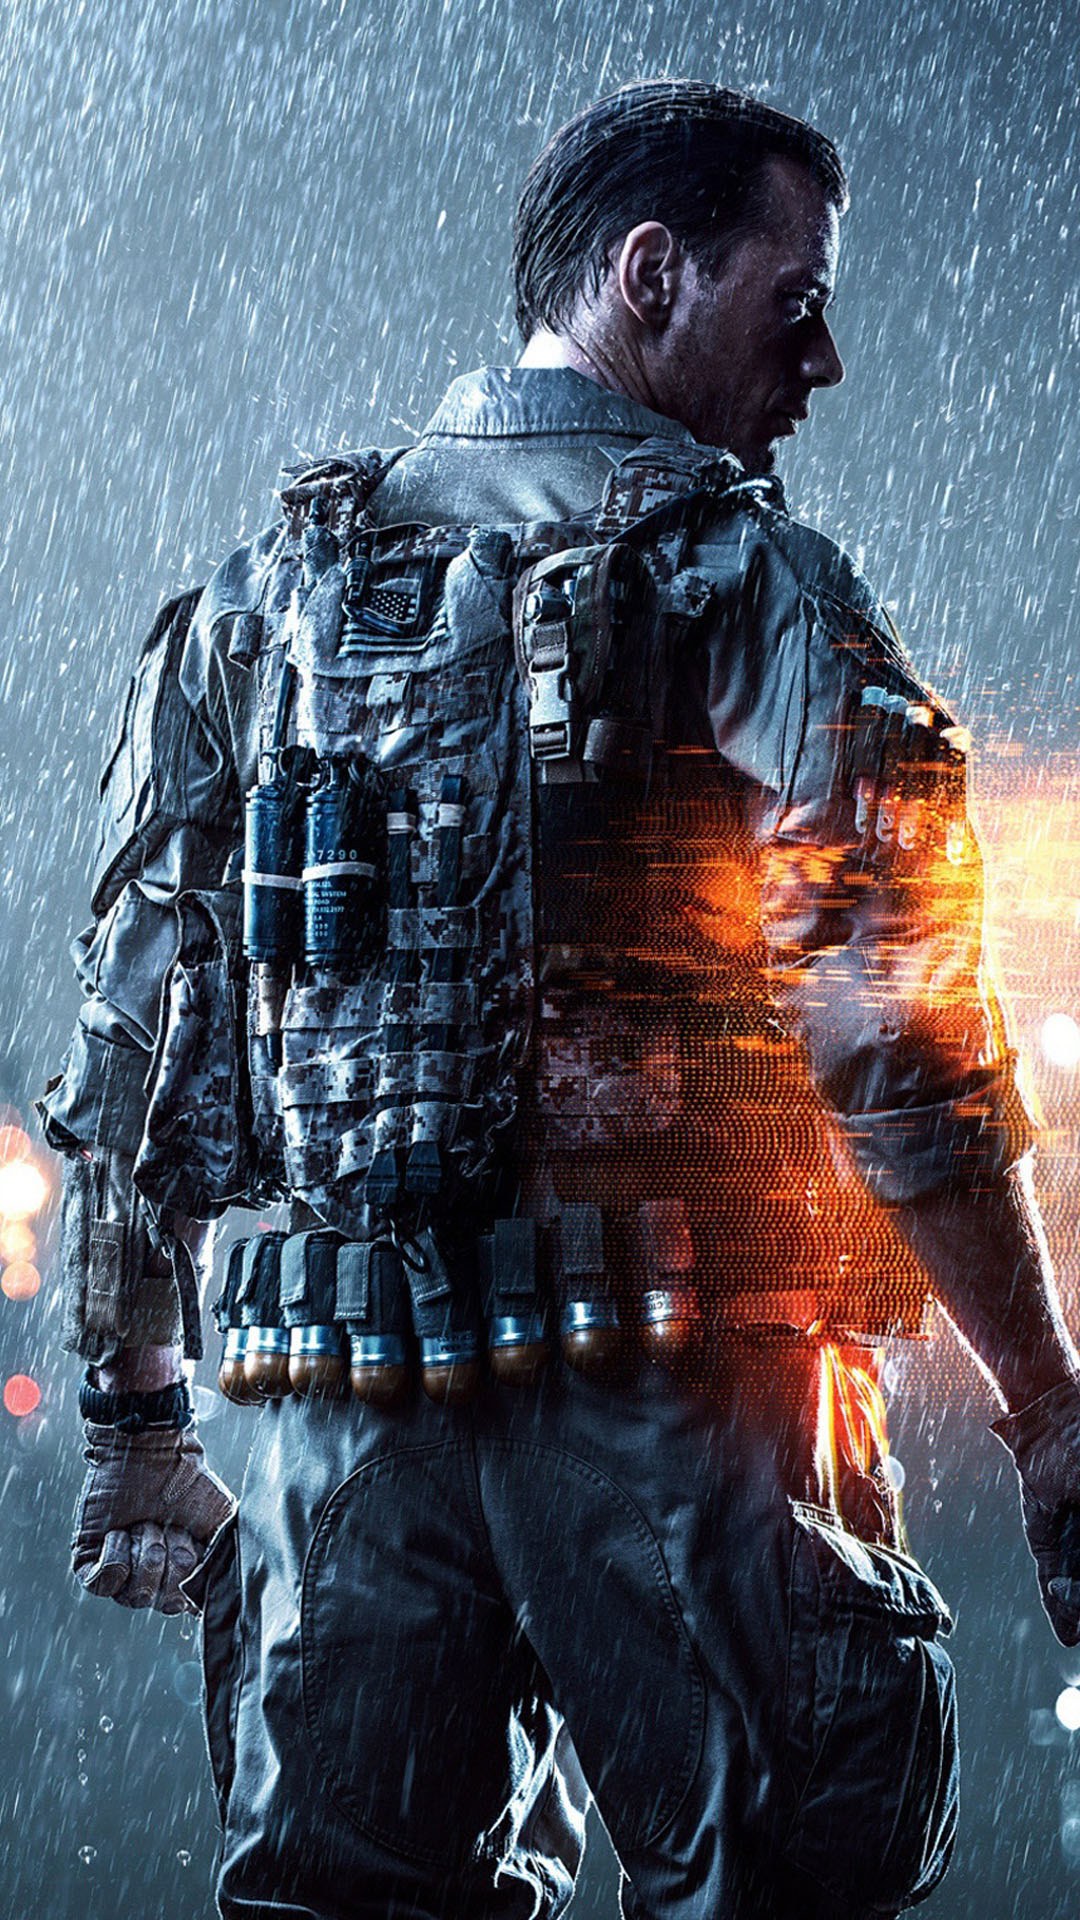 Battlefield 4 Wallpaper 4k Phone - HD Wallpaper